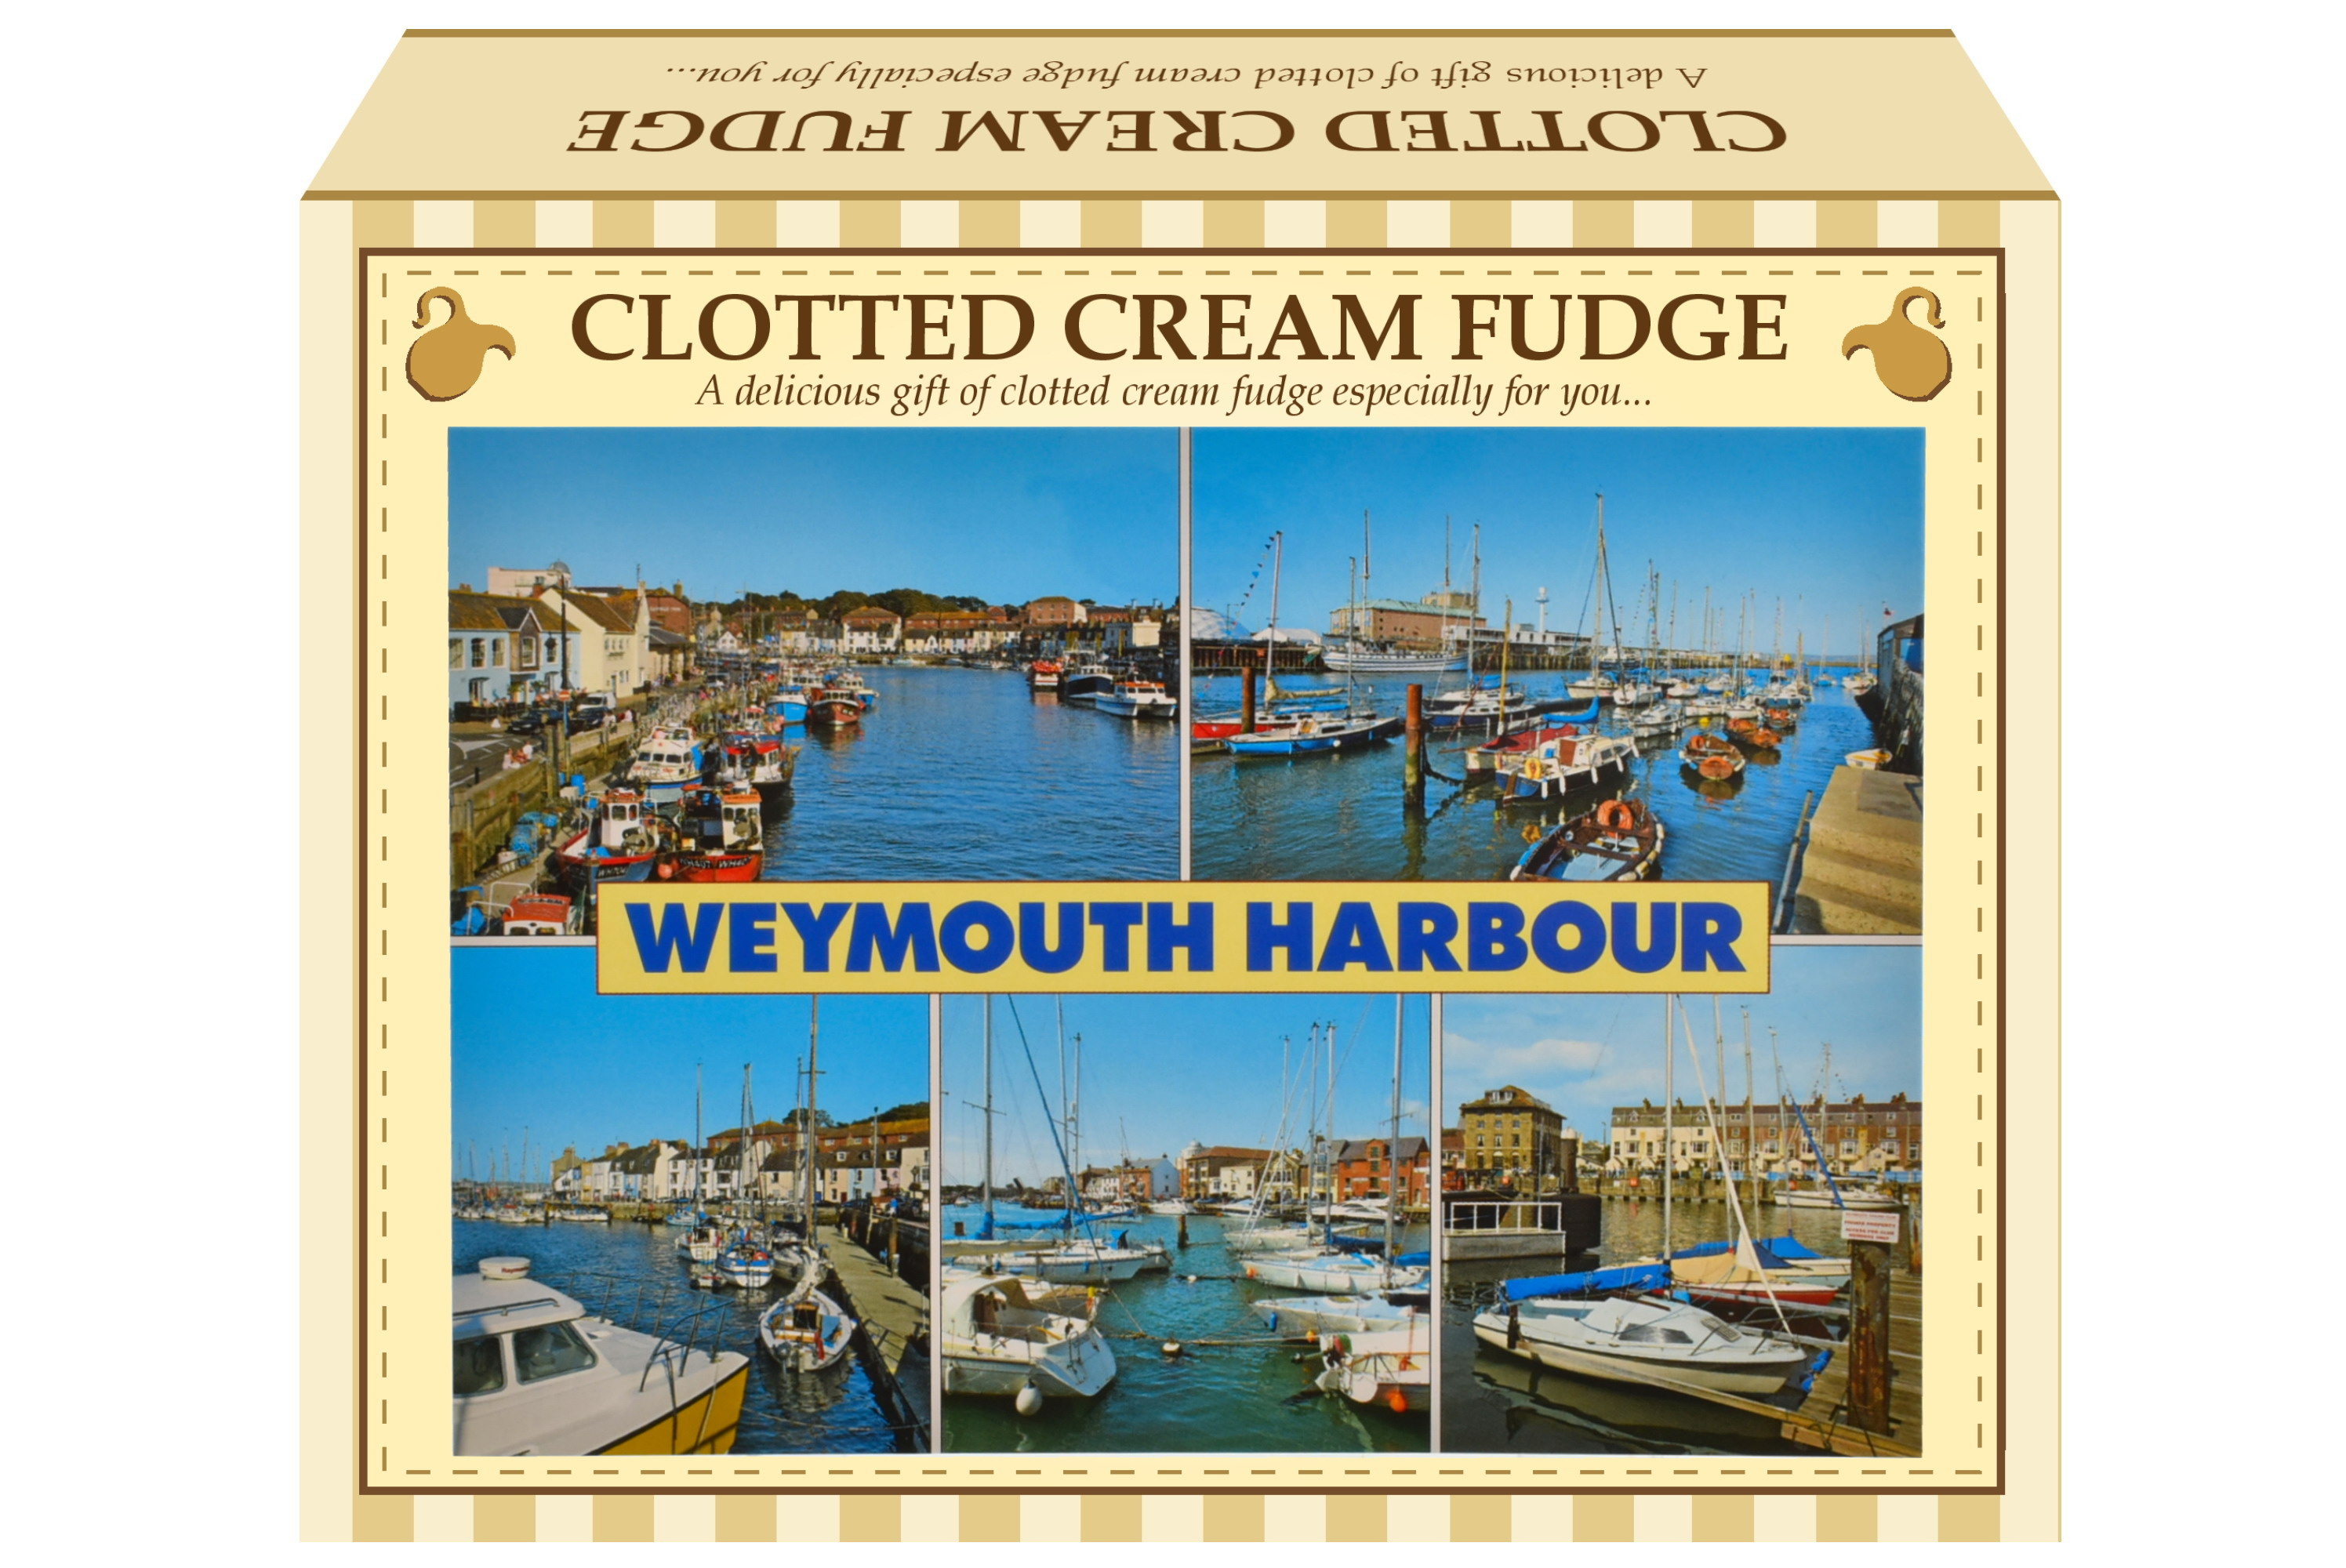 100g Clotted Cream Fudge Postcard Gift Box